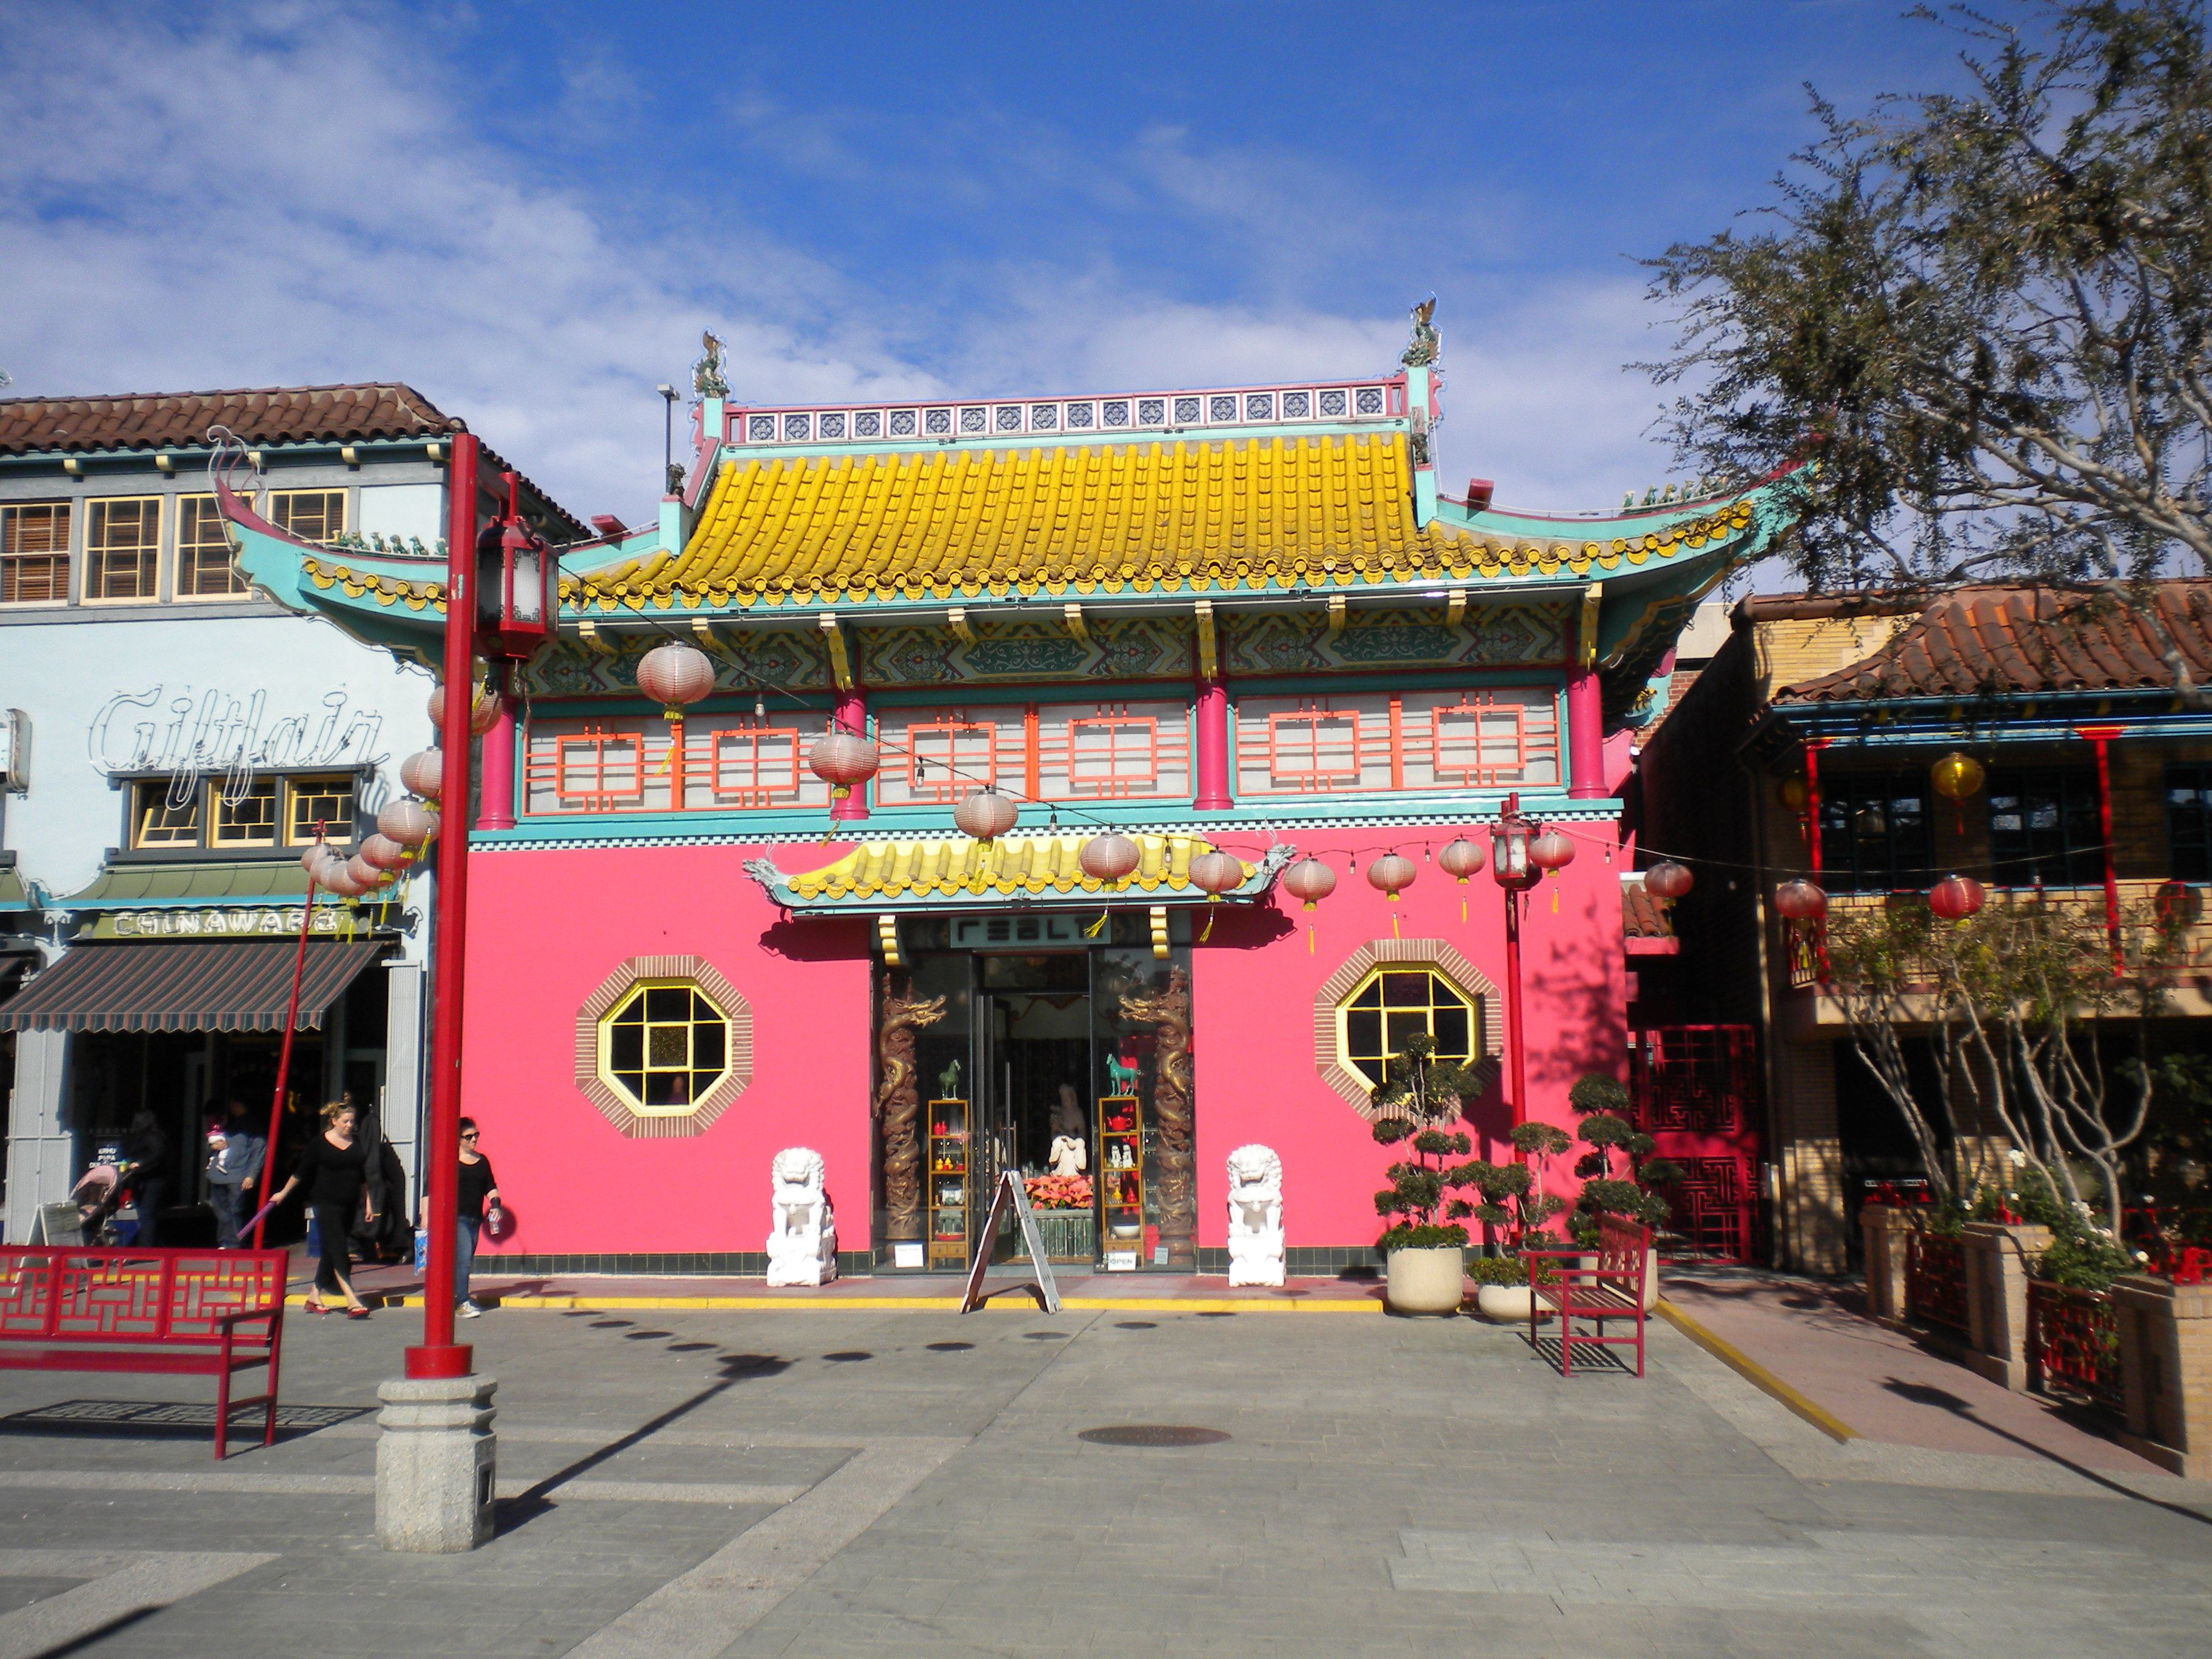 I love chinatown because it brings a nostalgic feeling